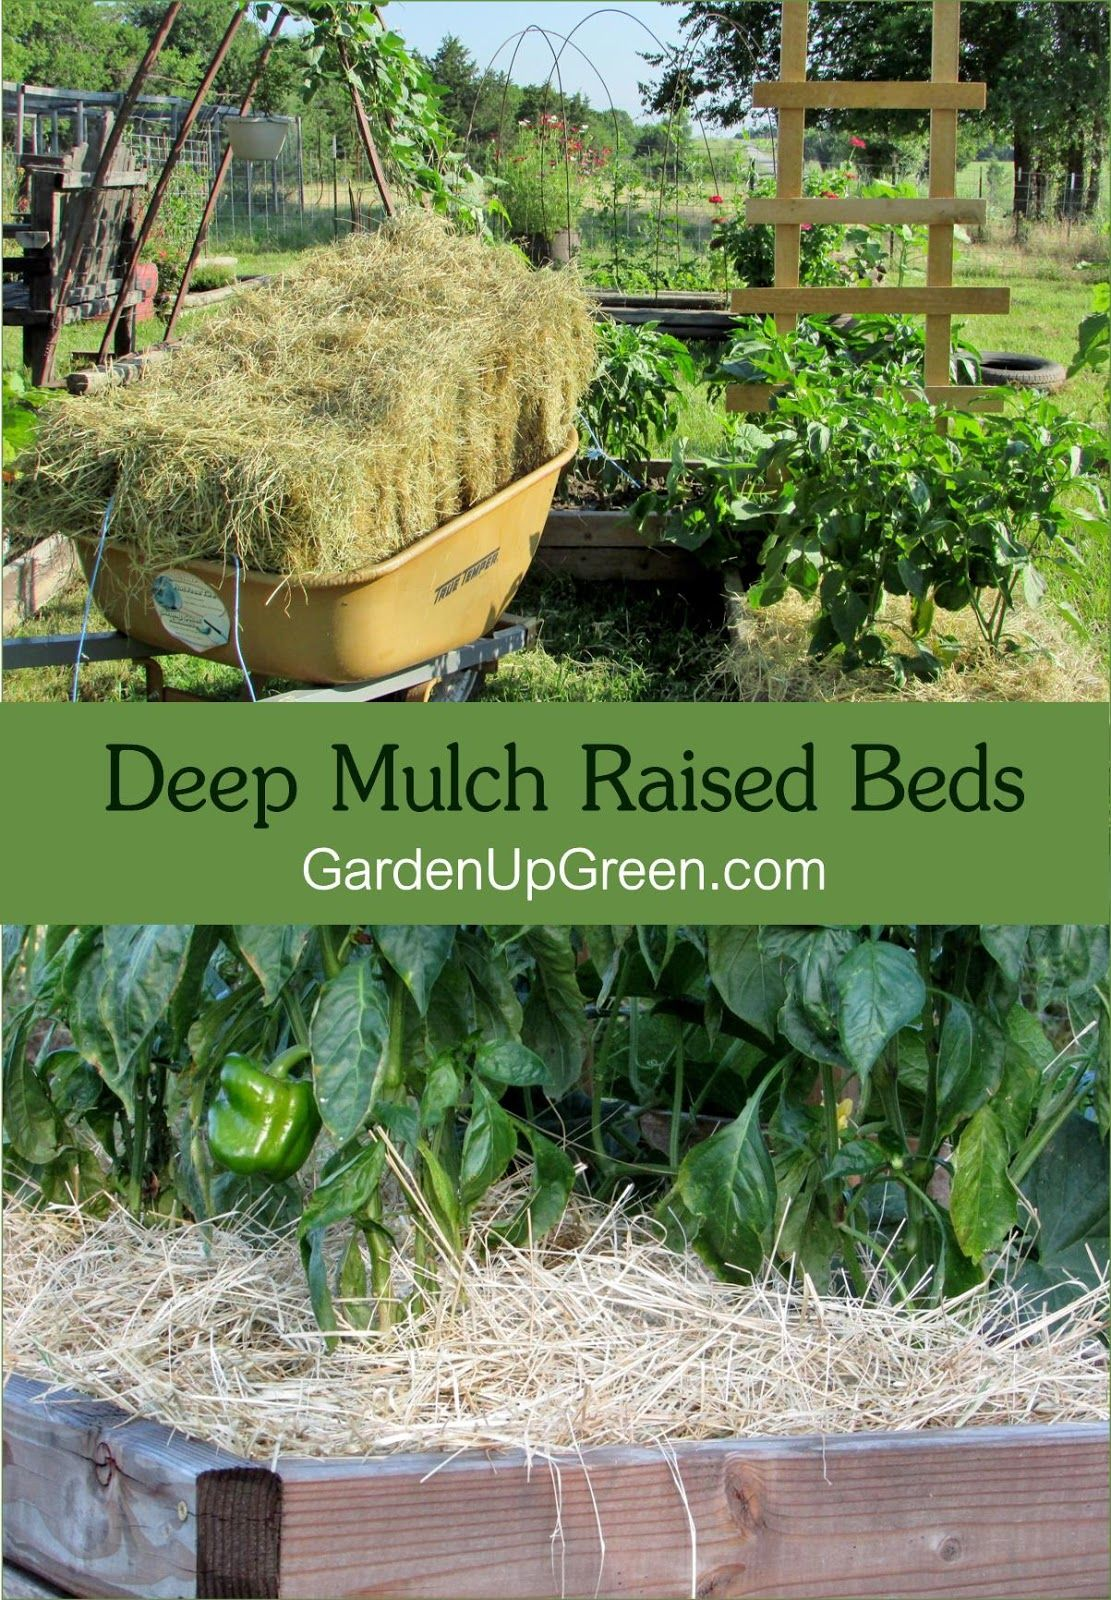 Learn How To Deep Mulch With Hay For Your Raised Beds